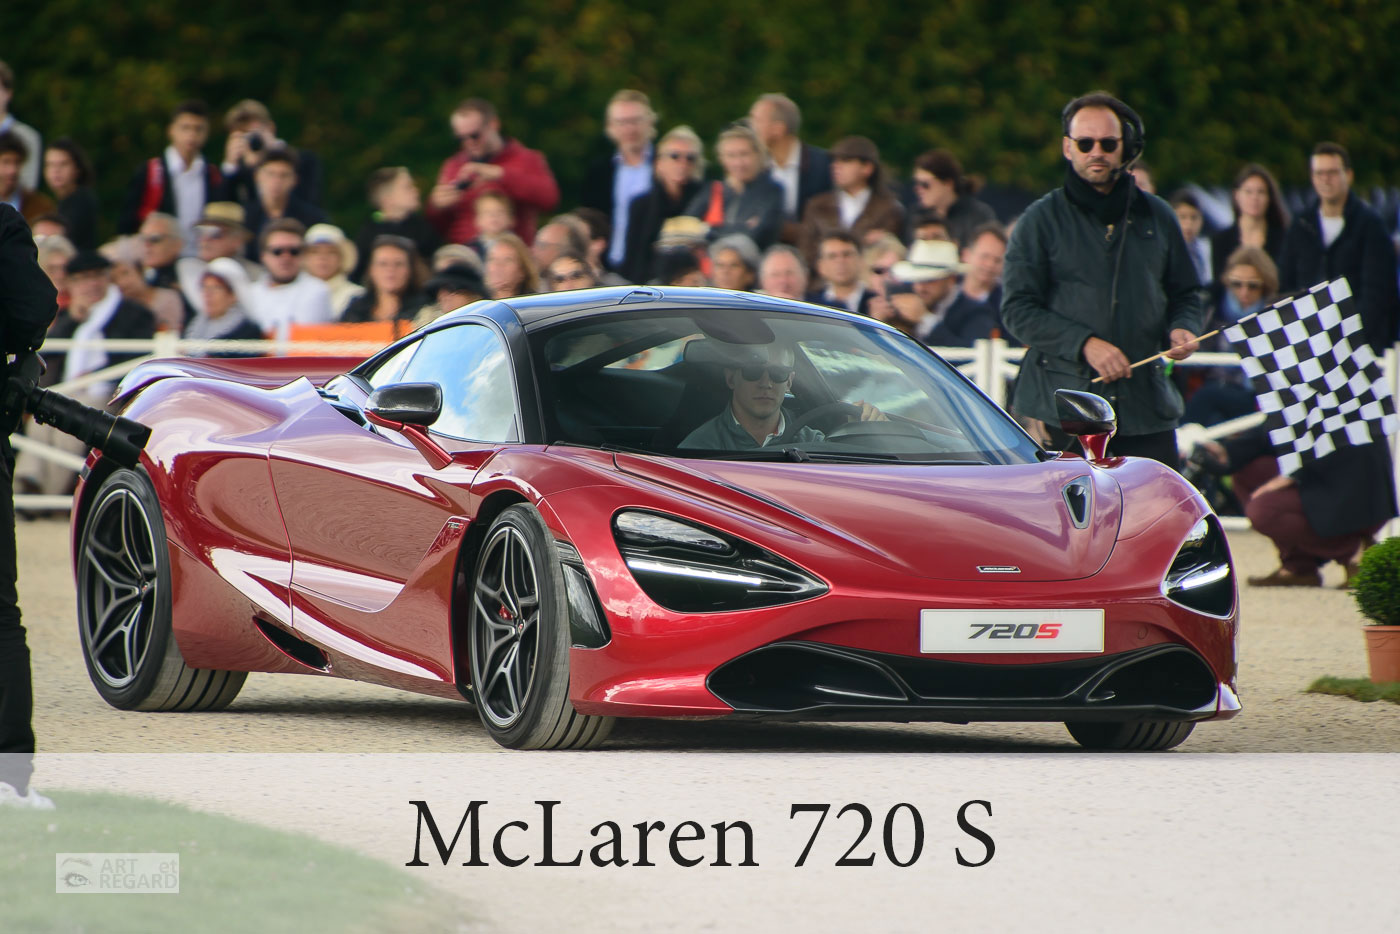 Présentation de la McLaren 720S Memphis RED à Chantilly